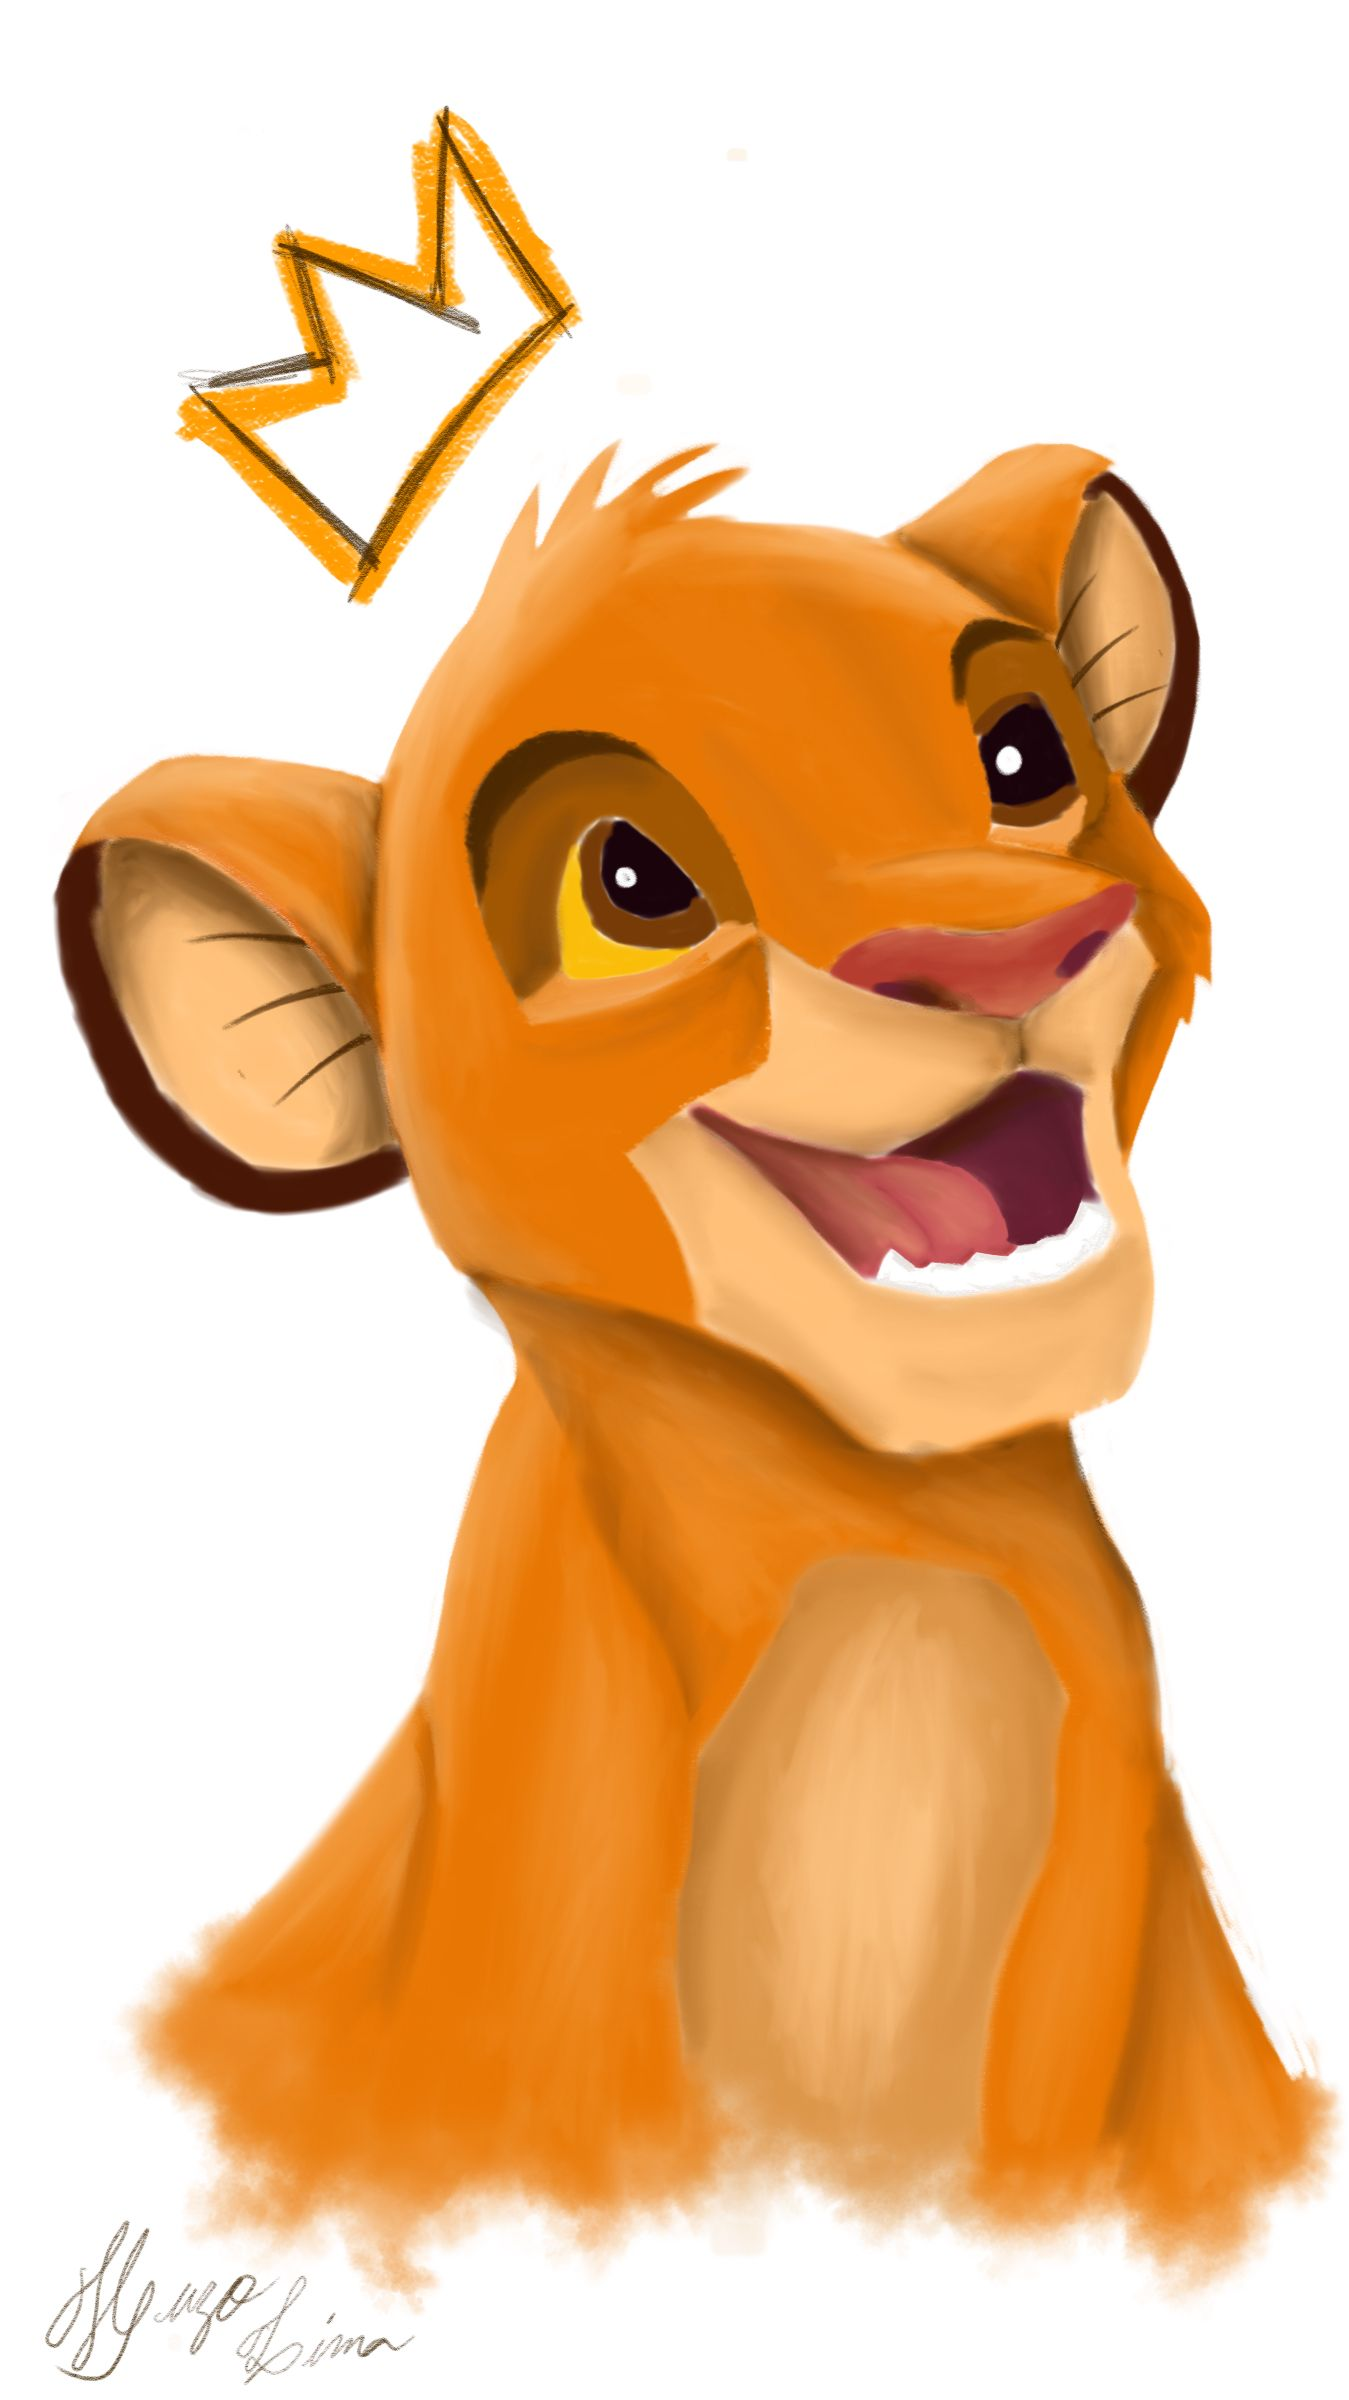 Drawing Simba Lion King Drawings Lion King Pictures Cute Disney Drawings